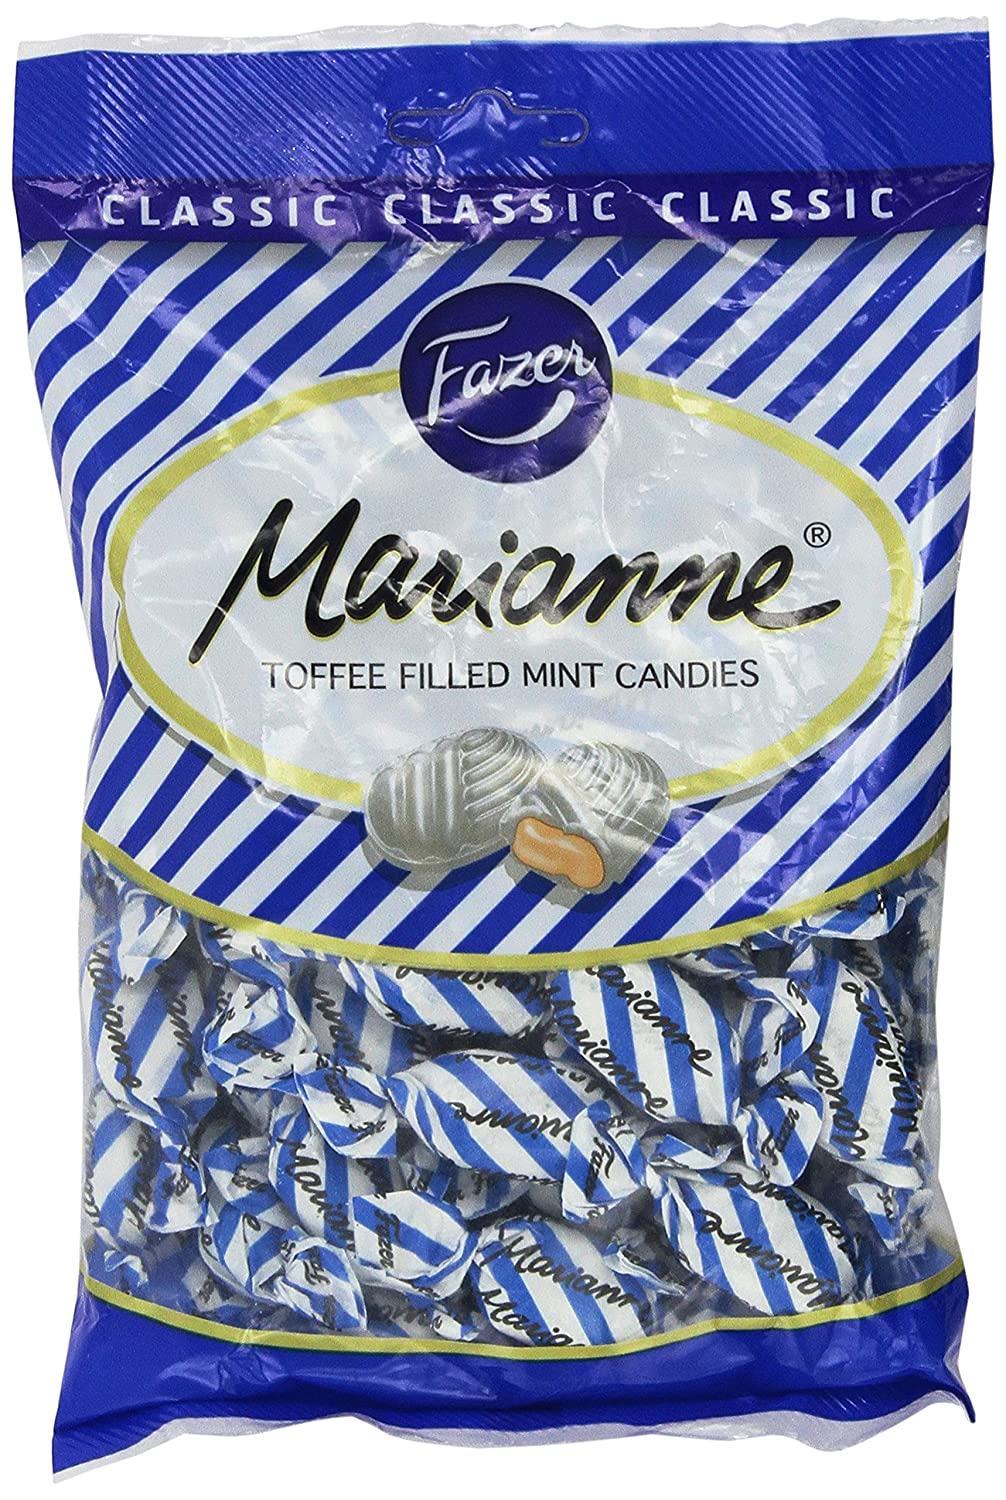 Marianne Toffee Filled Mint Sales for sale Candies Fazer New life ounce Karl 7.76 by